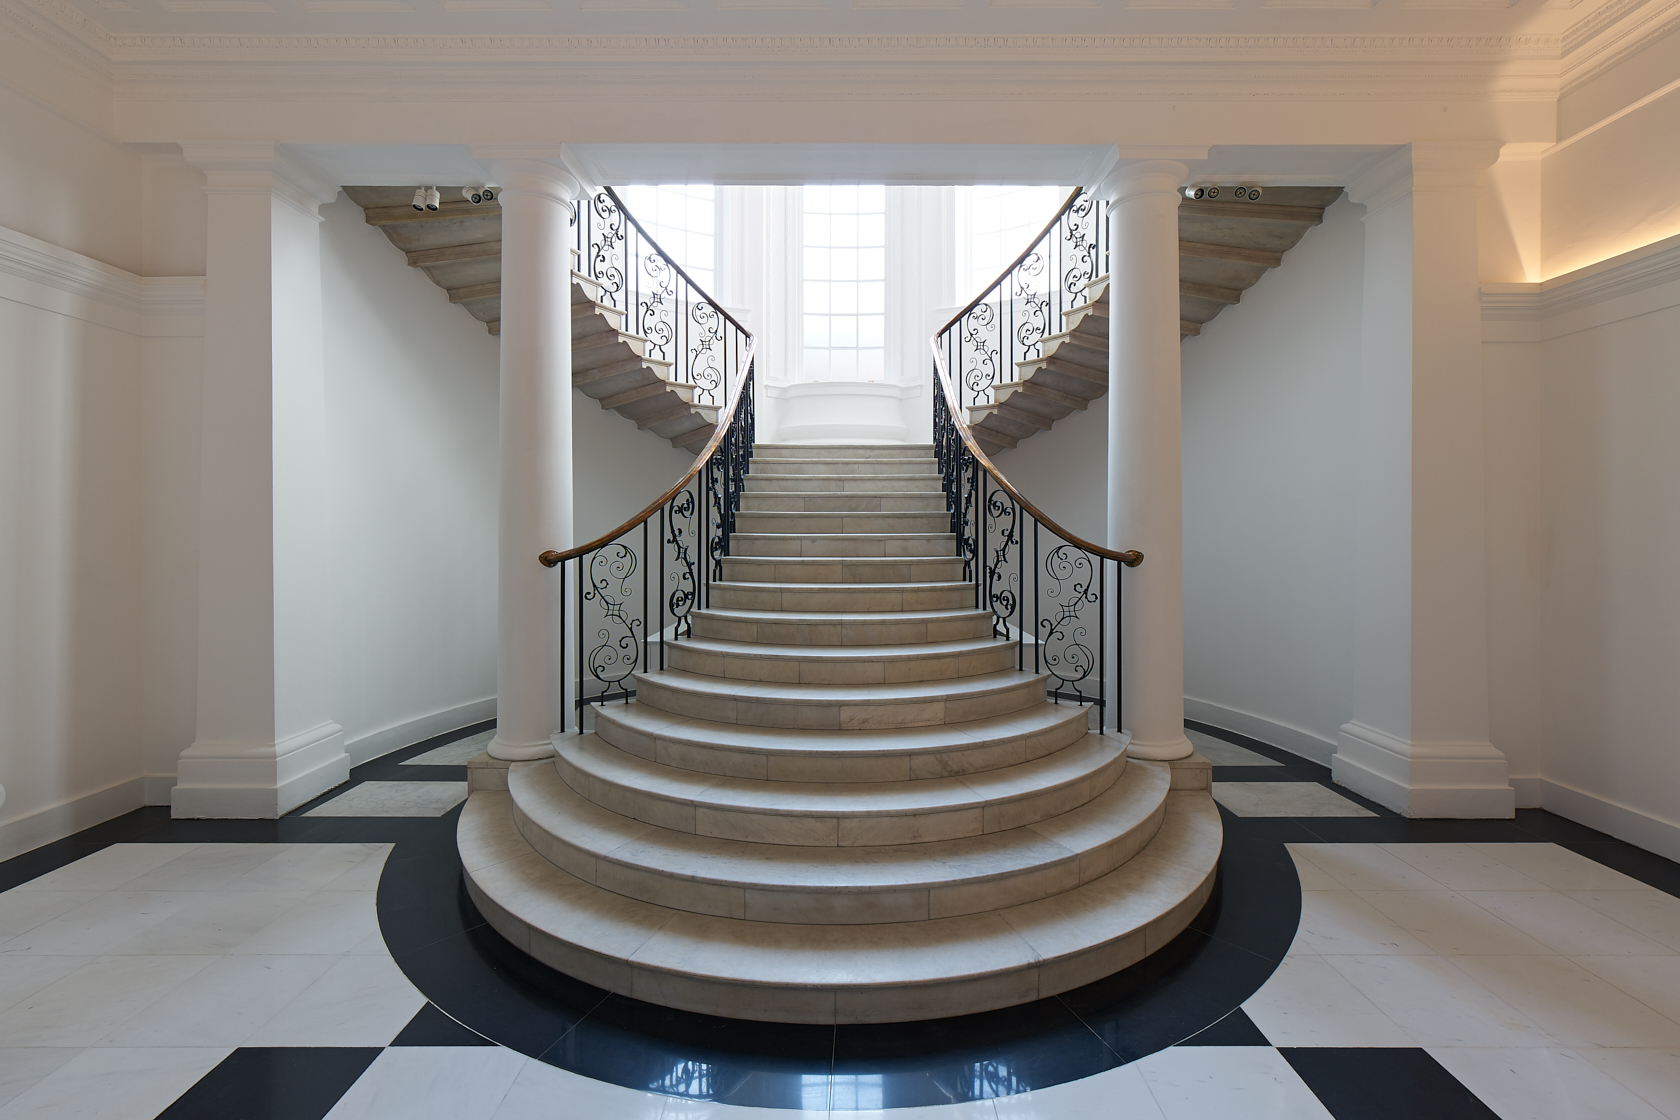 Galerie Thaddaeus Ropac - Dover Street Staircase